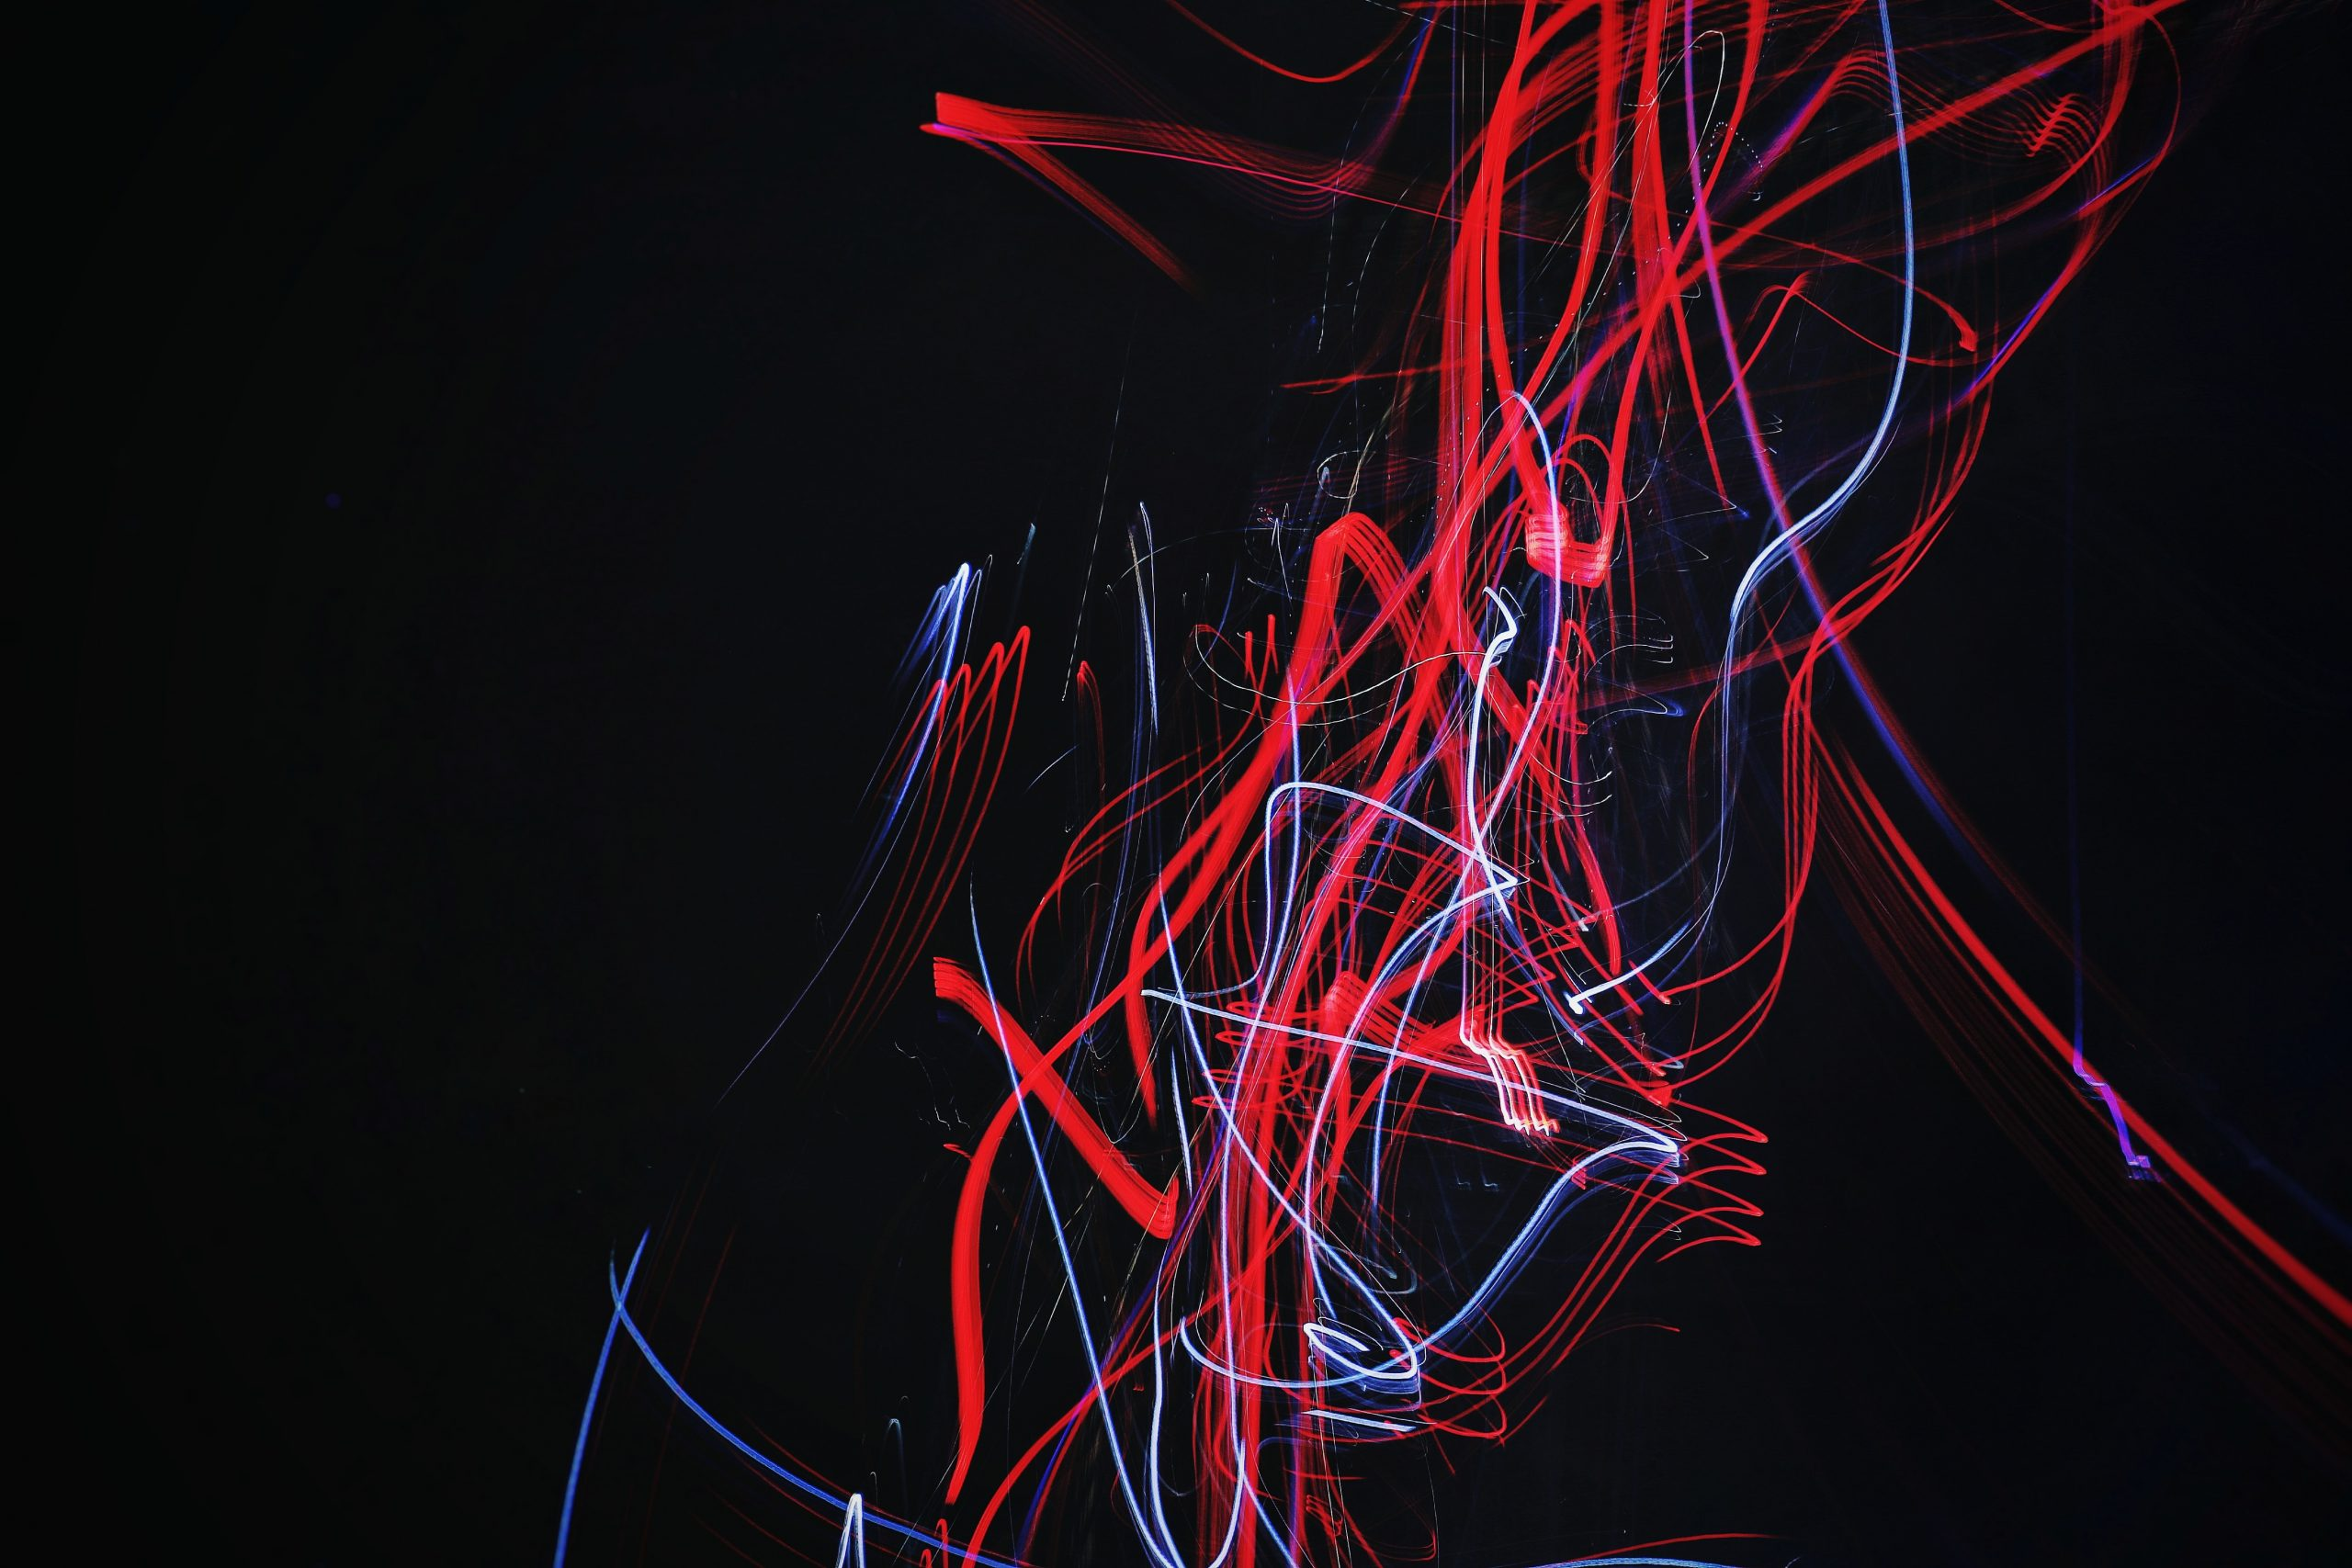 wallpaper Red and blue doodle artwork with black background